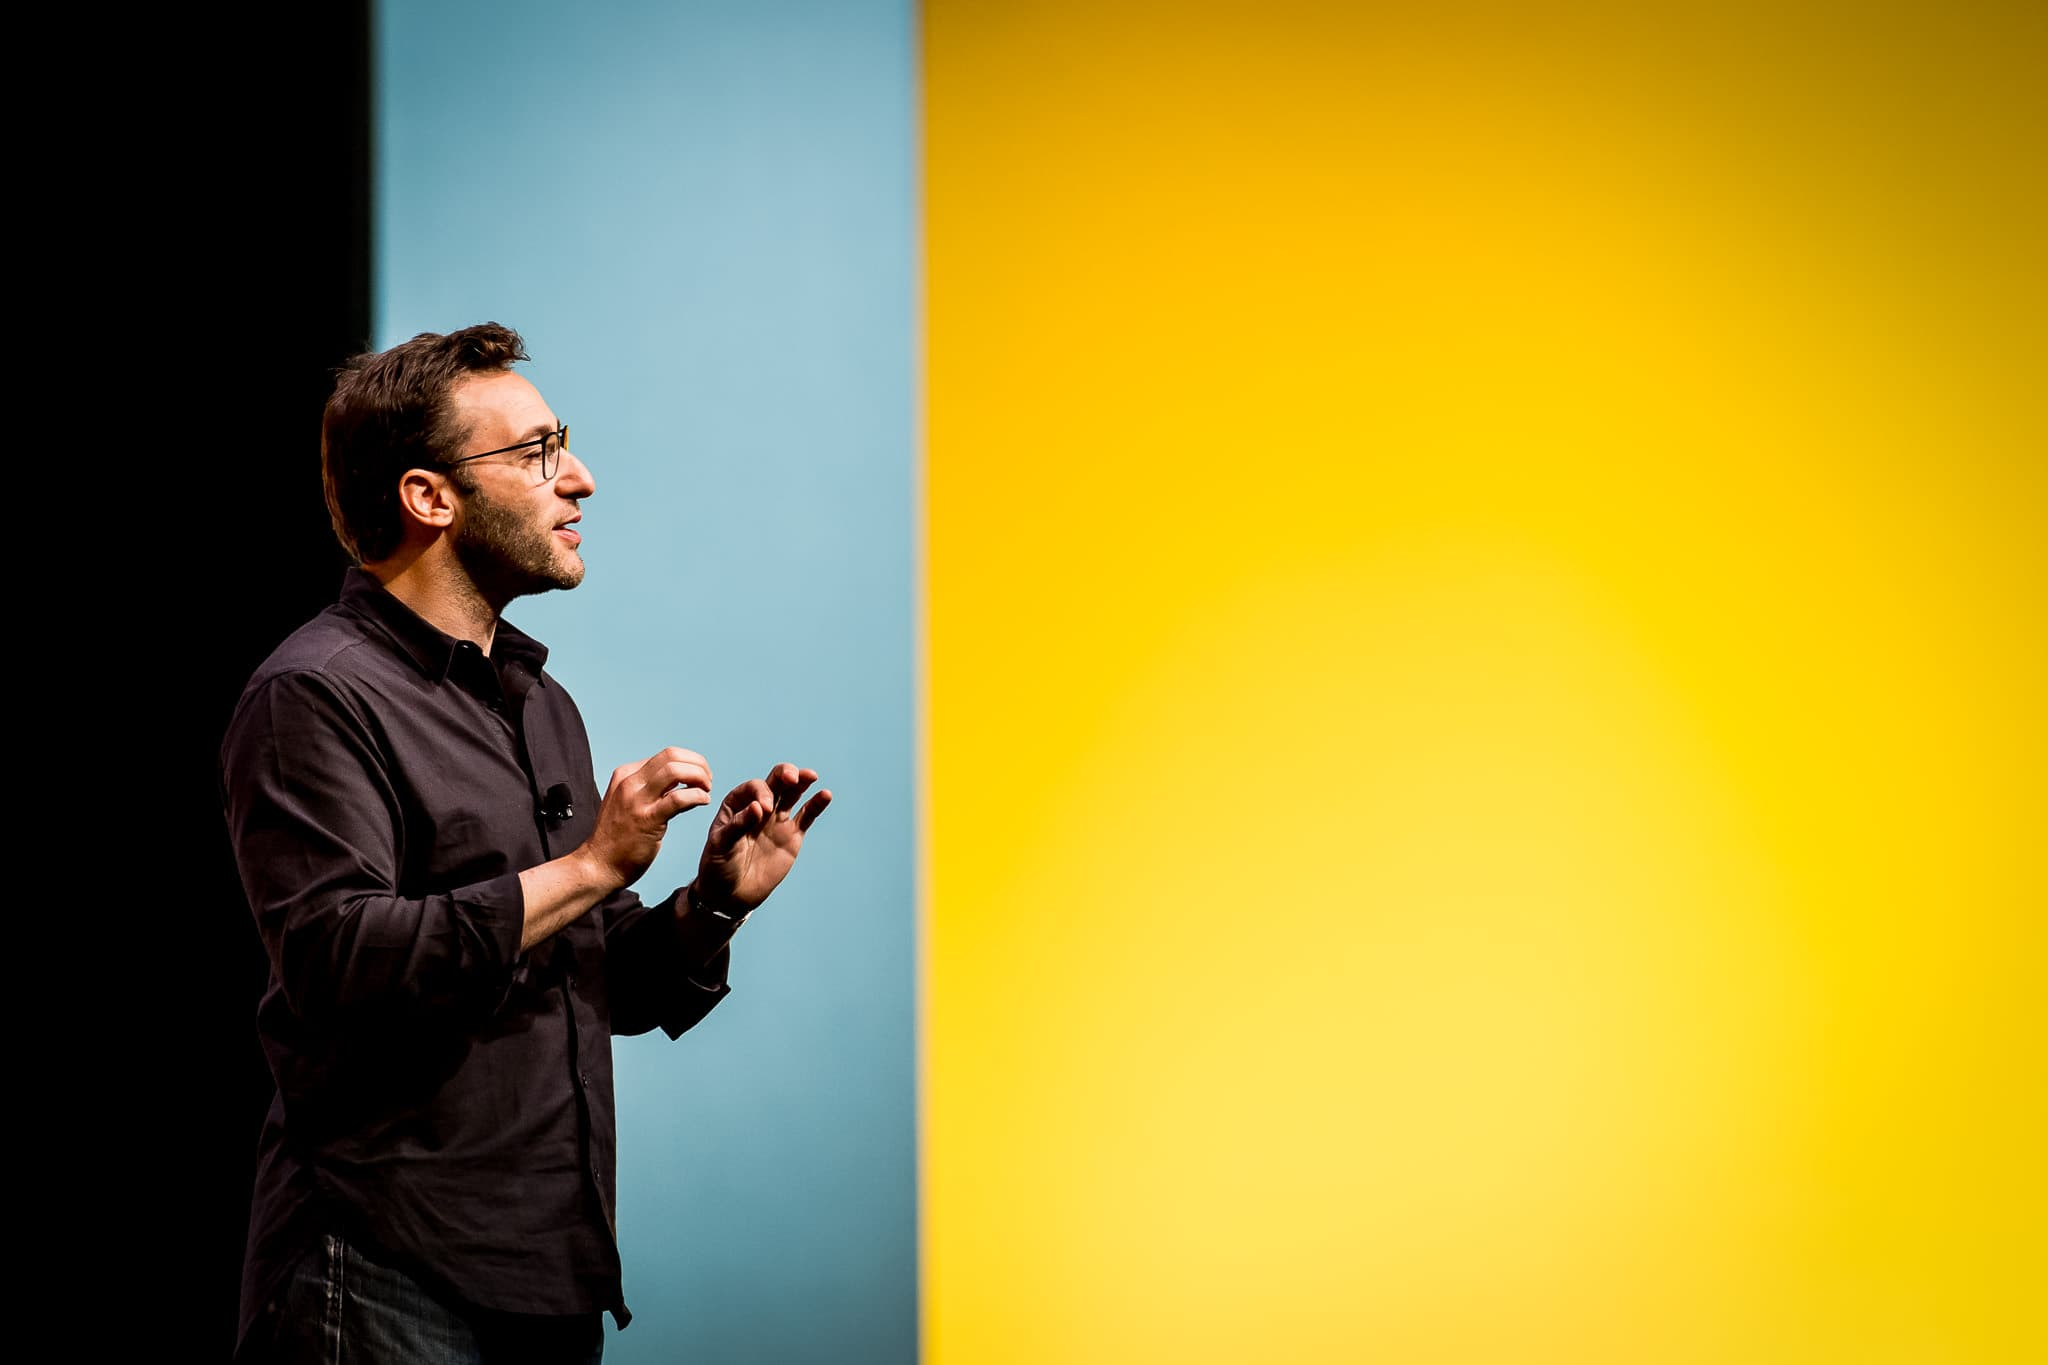 Simon Sinek giving Keynote Speech for EY employees in Orlando, FL with colorful background